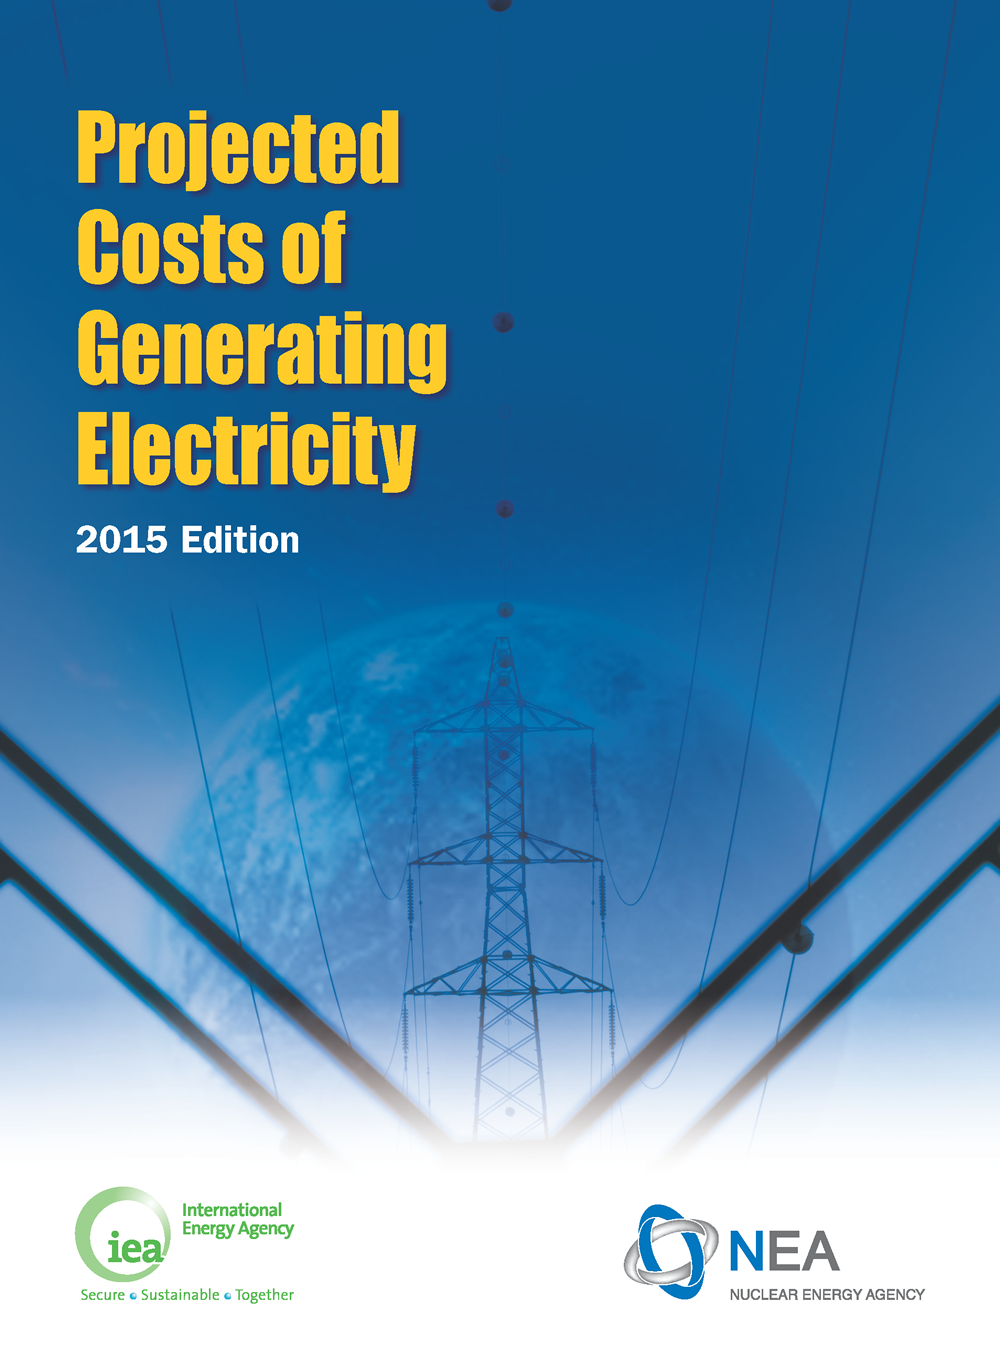 Projected Costs of Generating Electricity, 2015 edition